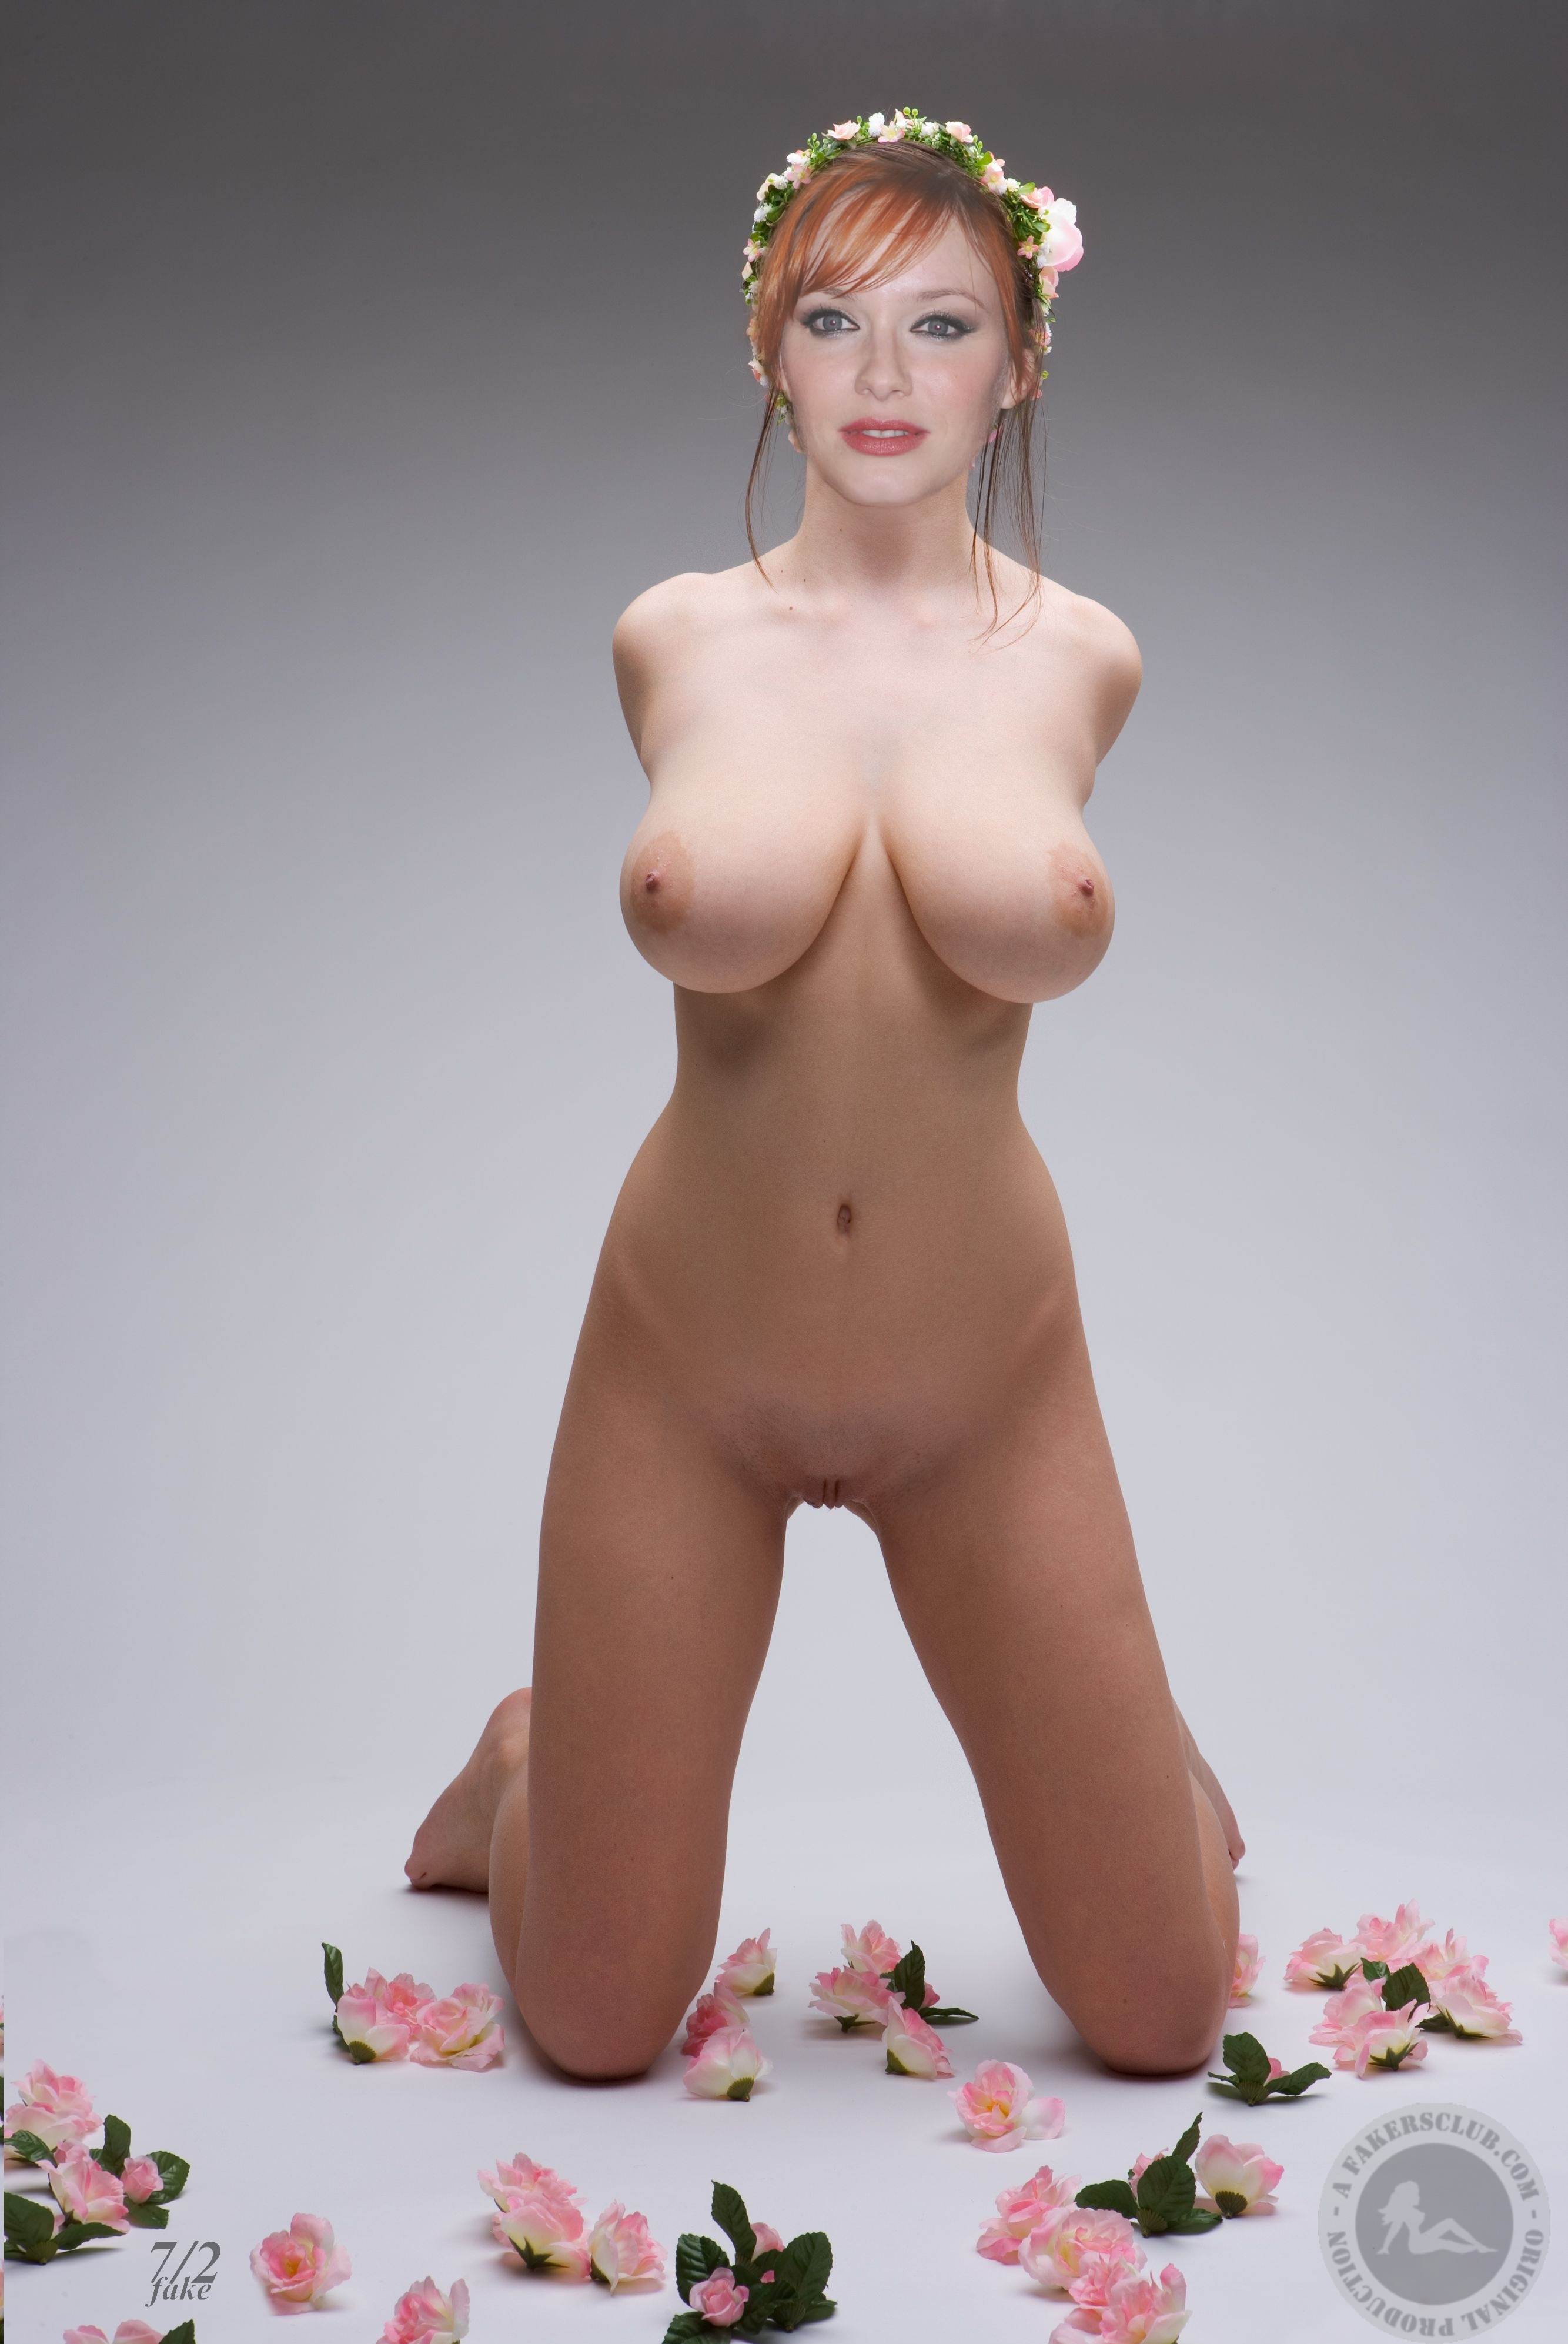 Worlds fattest naked women boobs